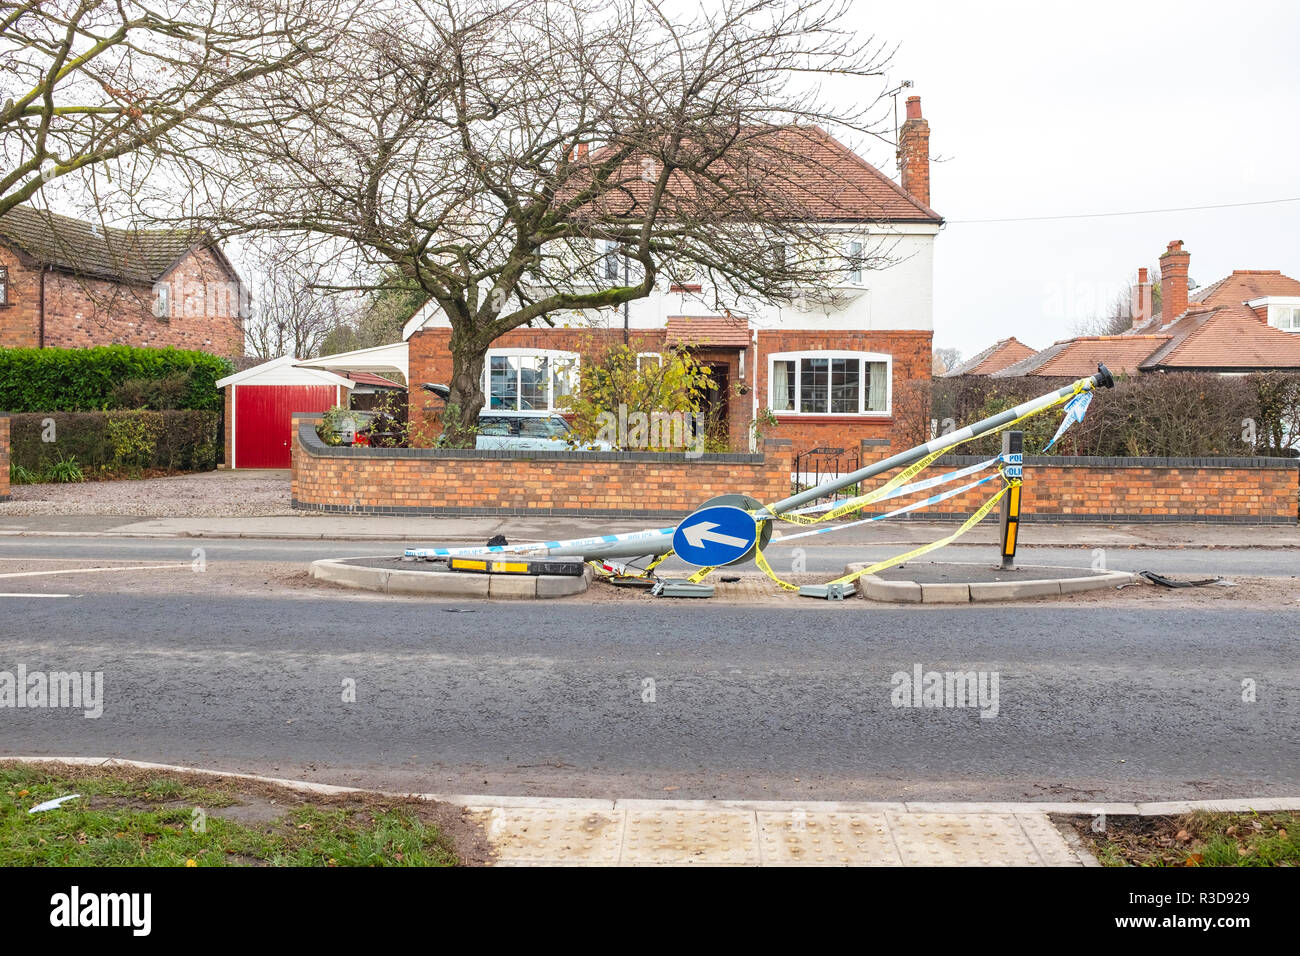 Road accident collision between car and lamppost in Sandbach Cheshire UK - Stock Image